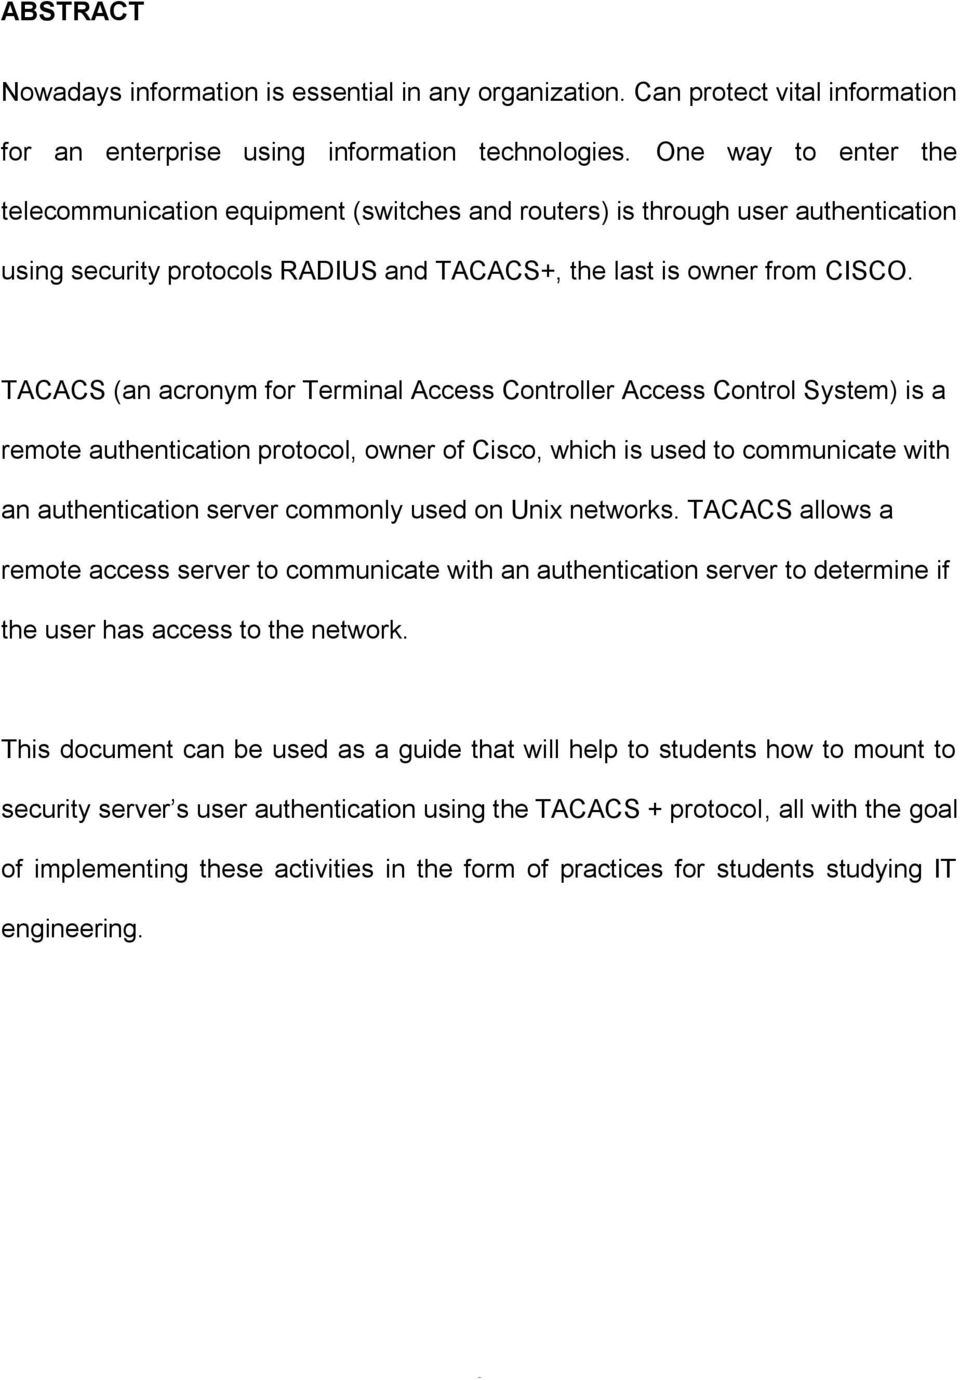 TACACS (an acronym for Terminal Access Controller Access Control System) is a remote authentication protocol, owner of Cisco, which is used to communicate with an authentication server commonly used